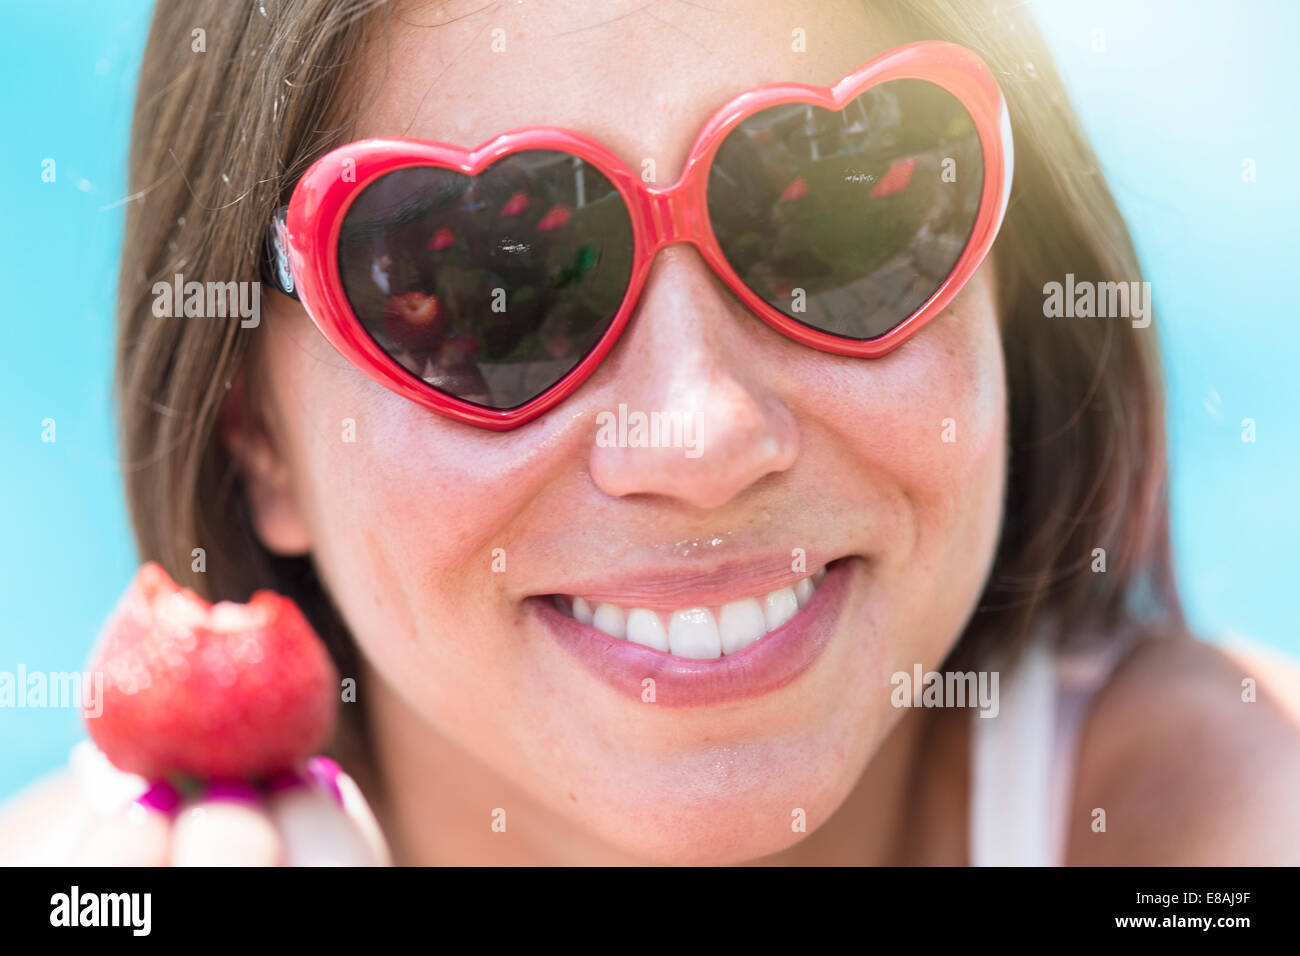 Close up portrait of young woman eating strawberry - Stock Image